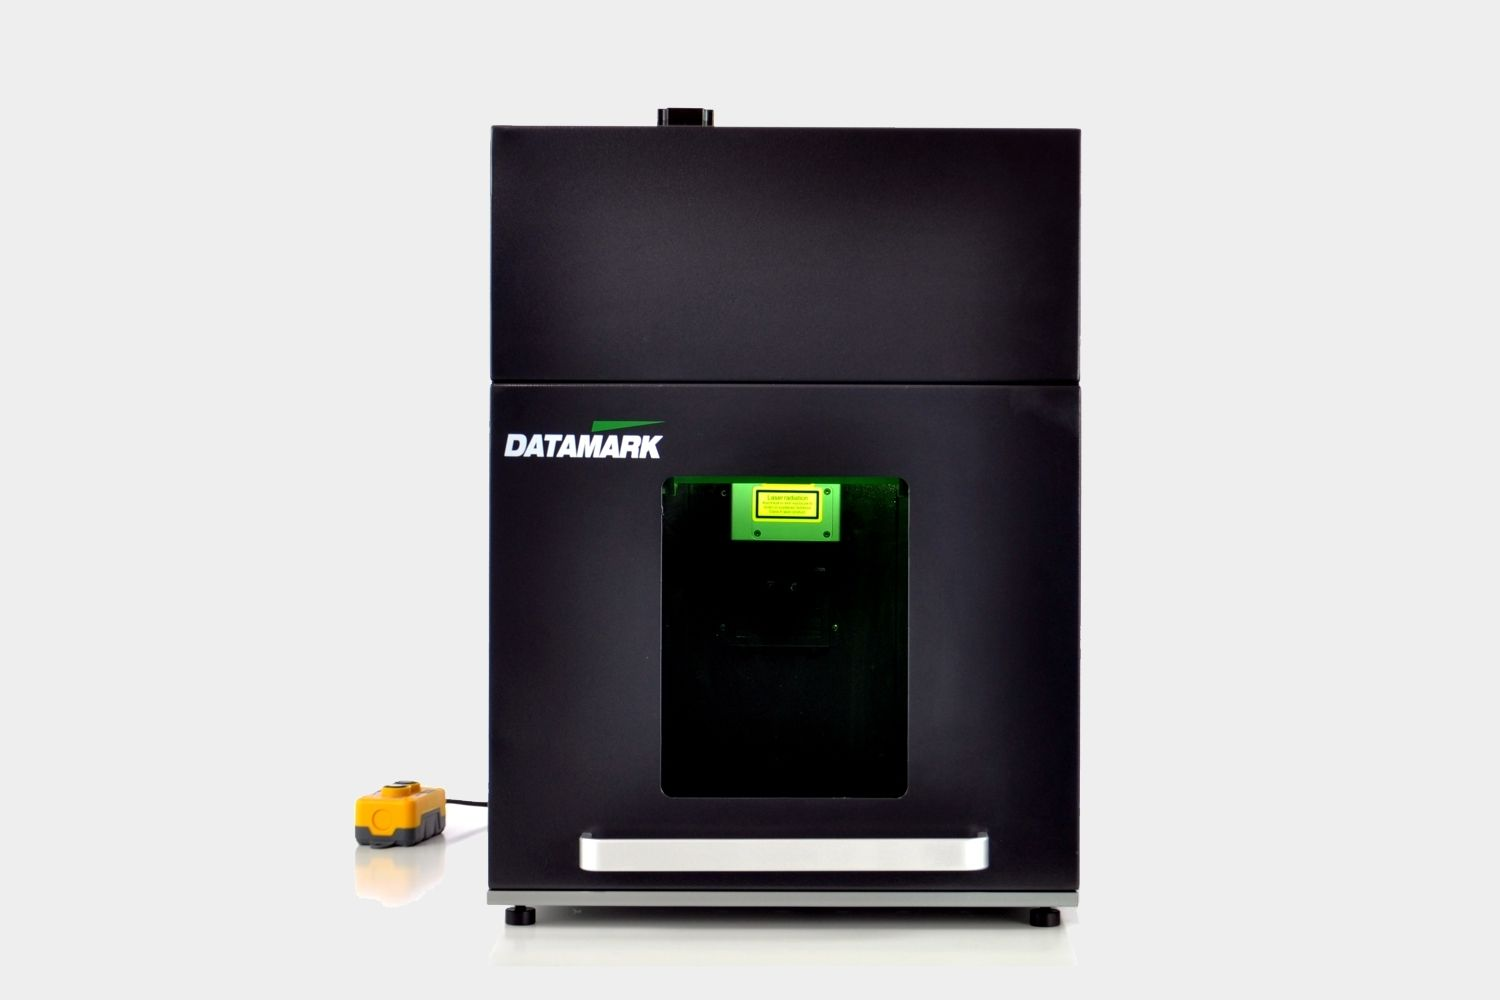 Enclosured laser marking workstation